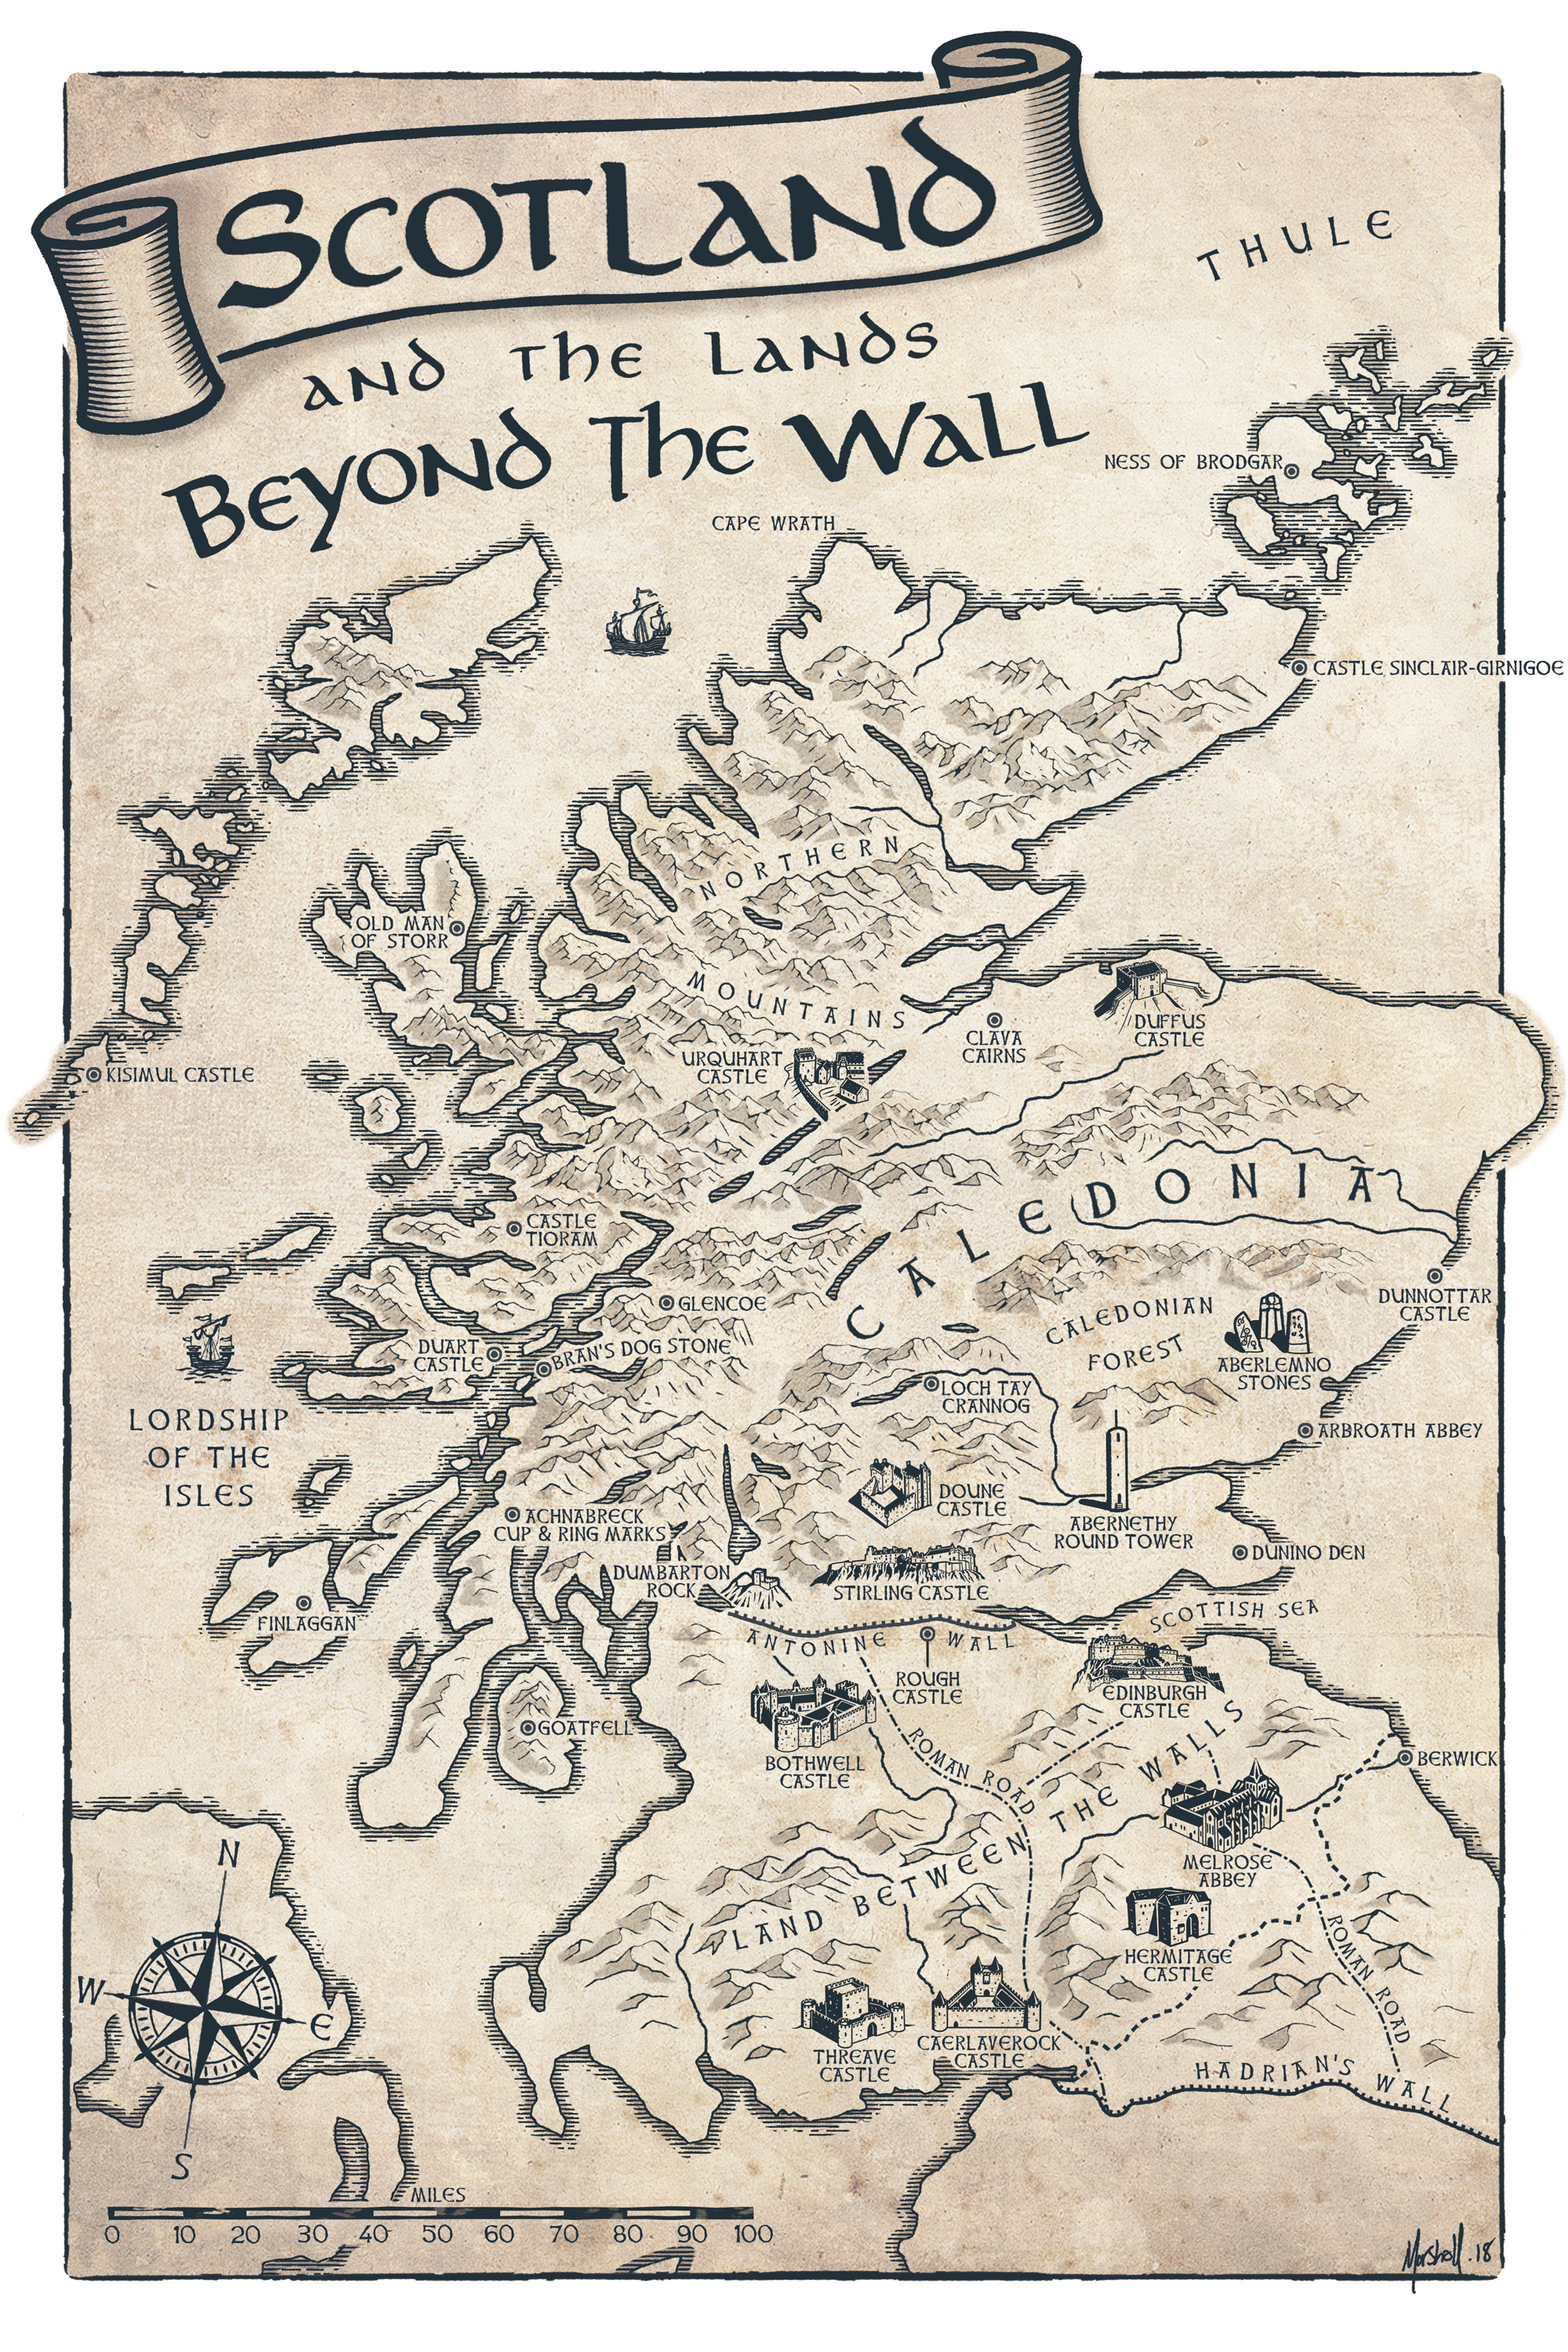 Scotland And The Lands Beyond the Wall Map